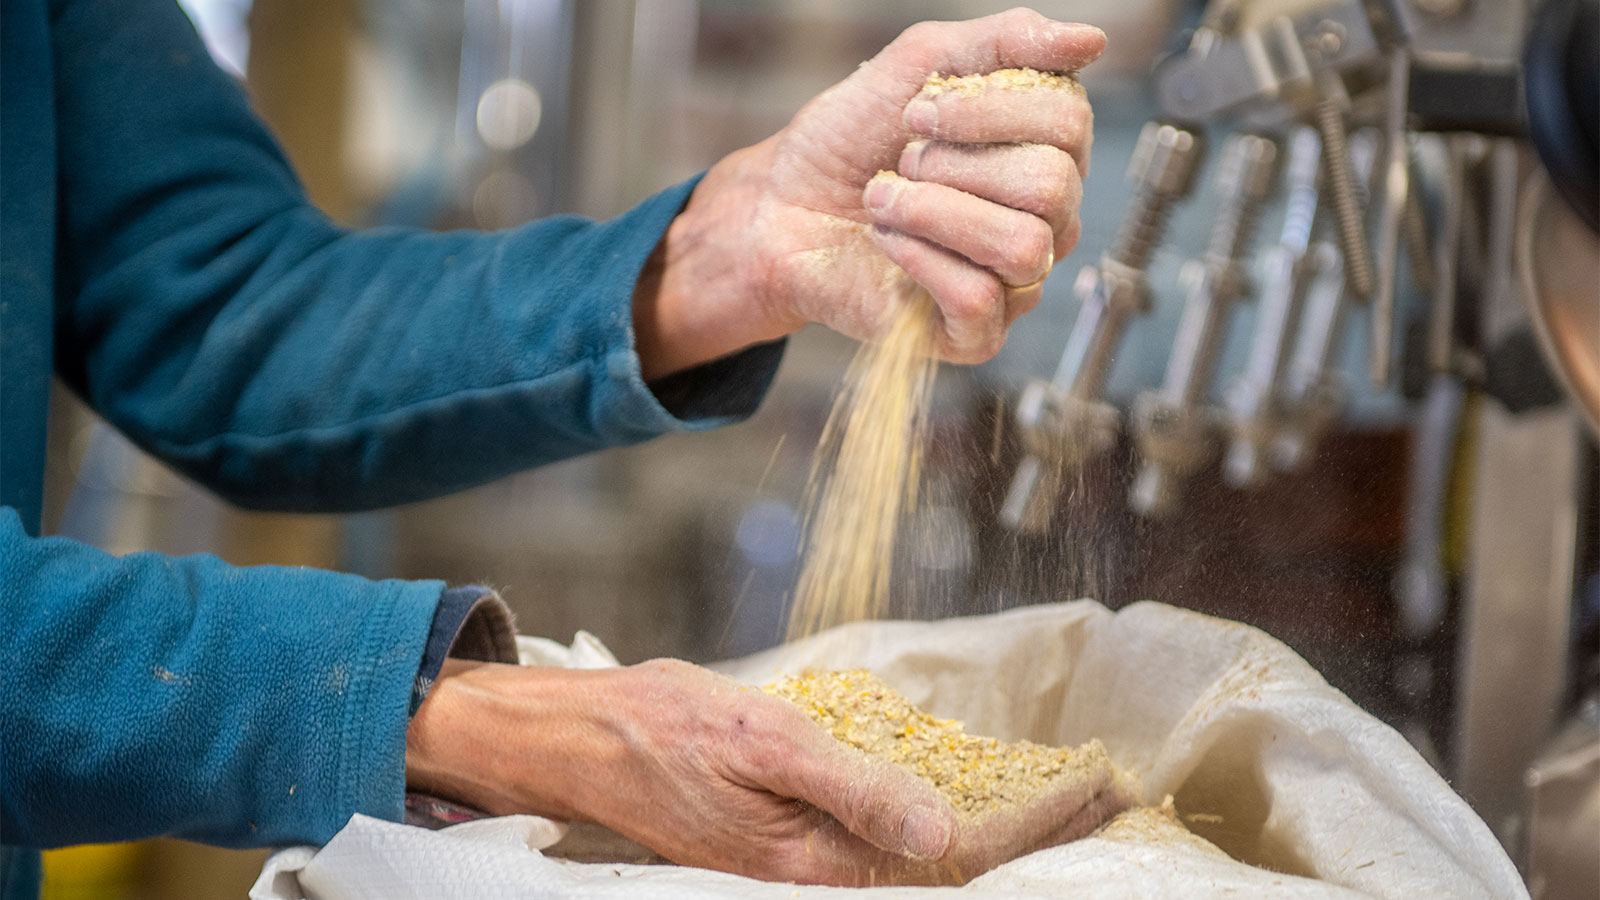 Hands pouring barley to make beer